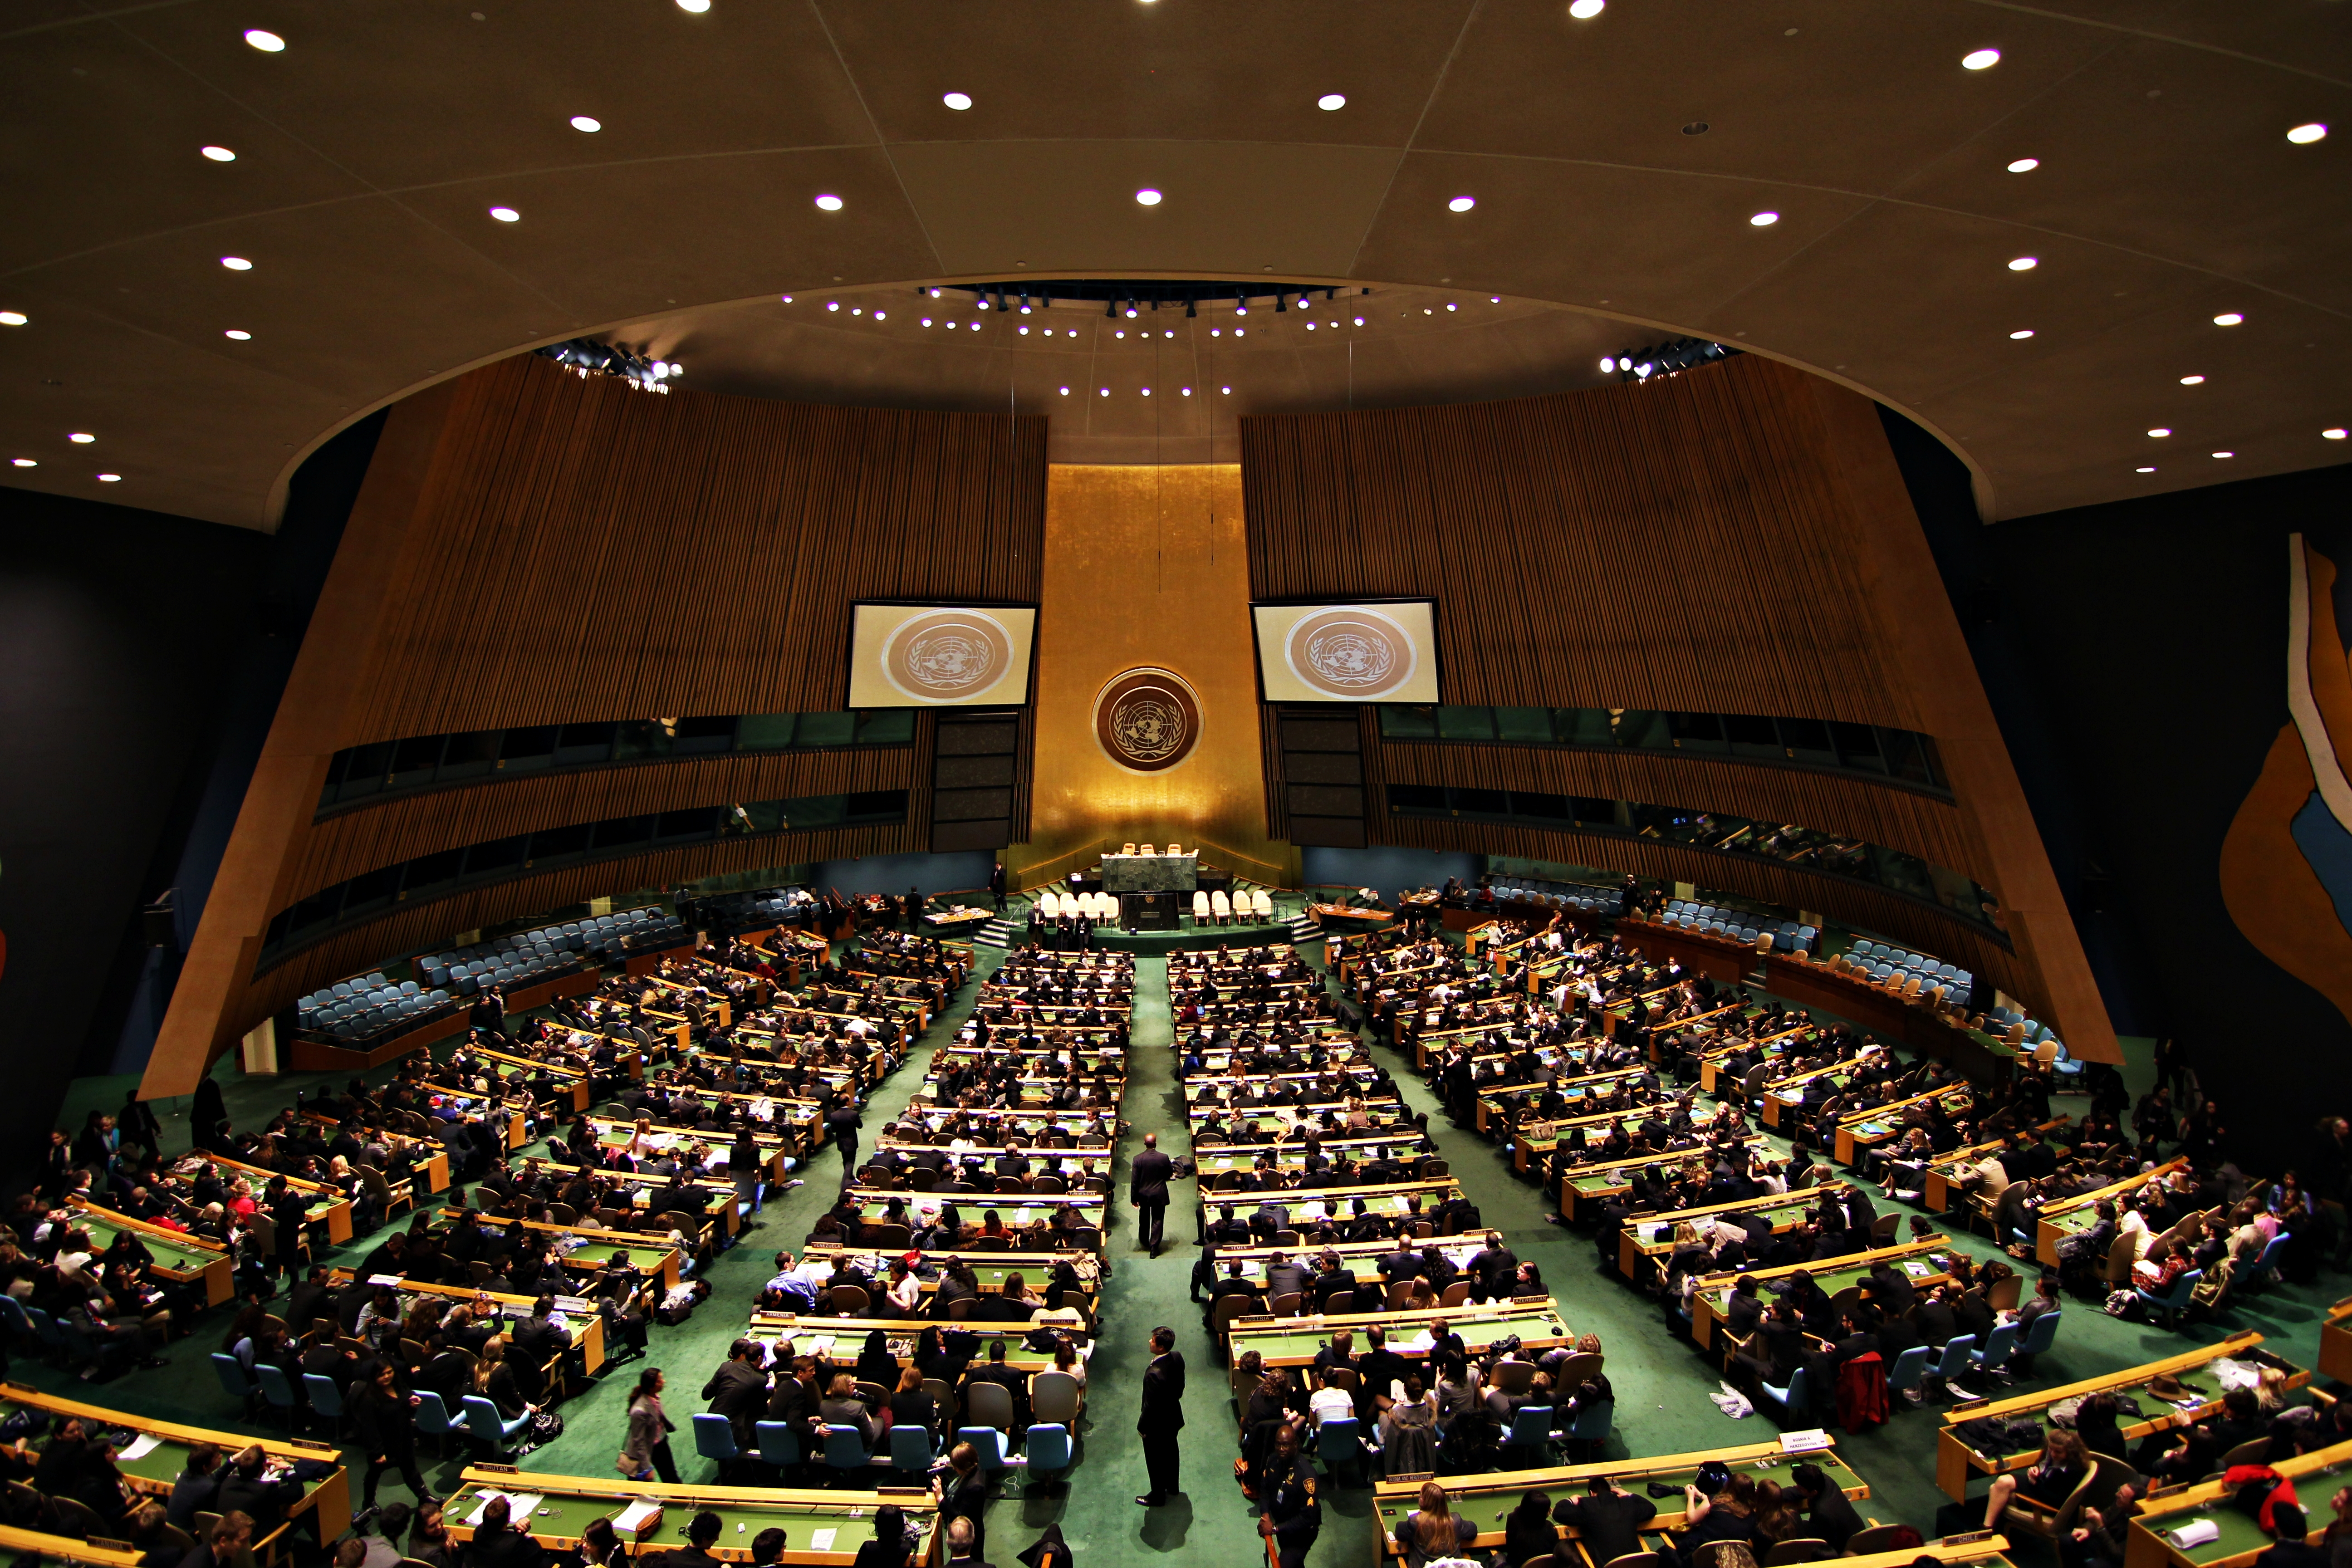 You know it's a big deal when a topic is raised at the United Nations General Assembly.